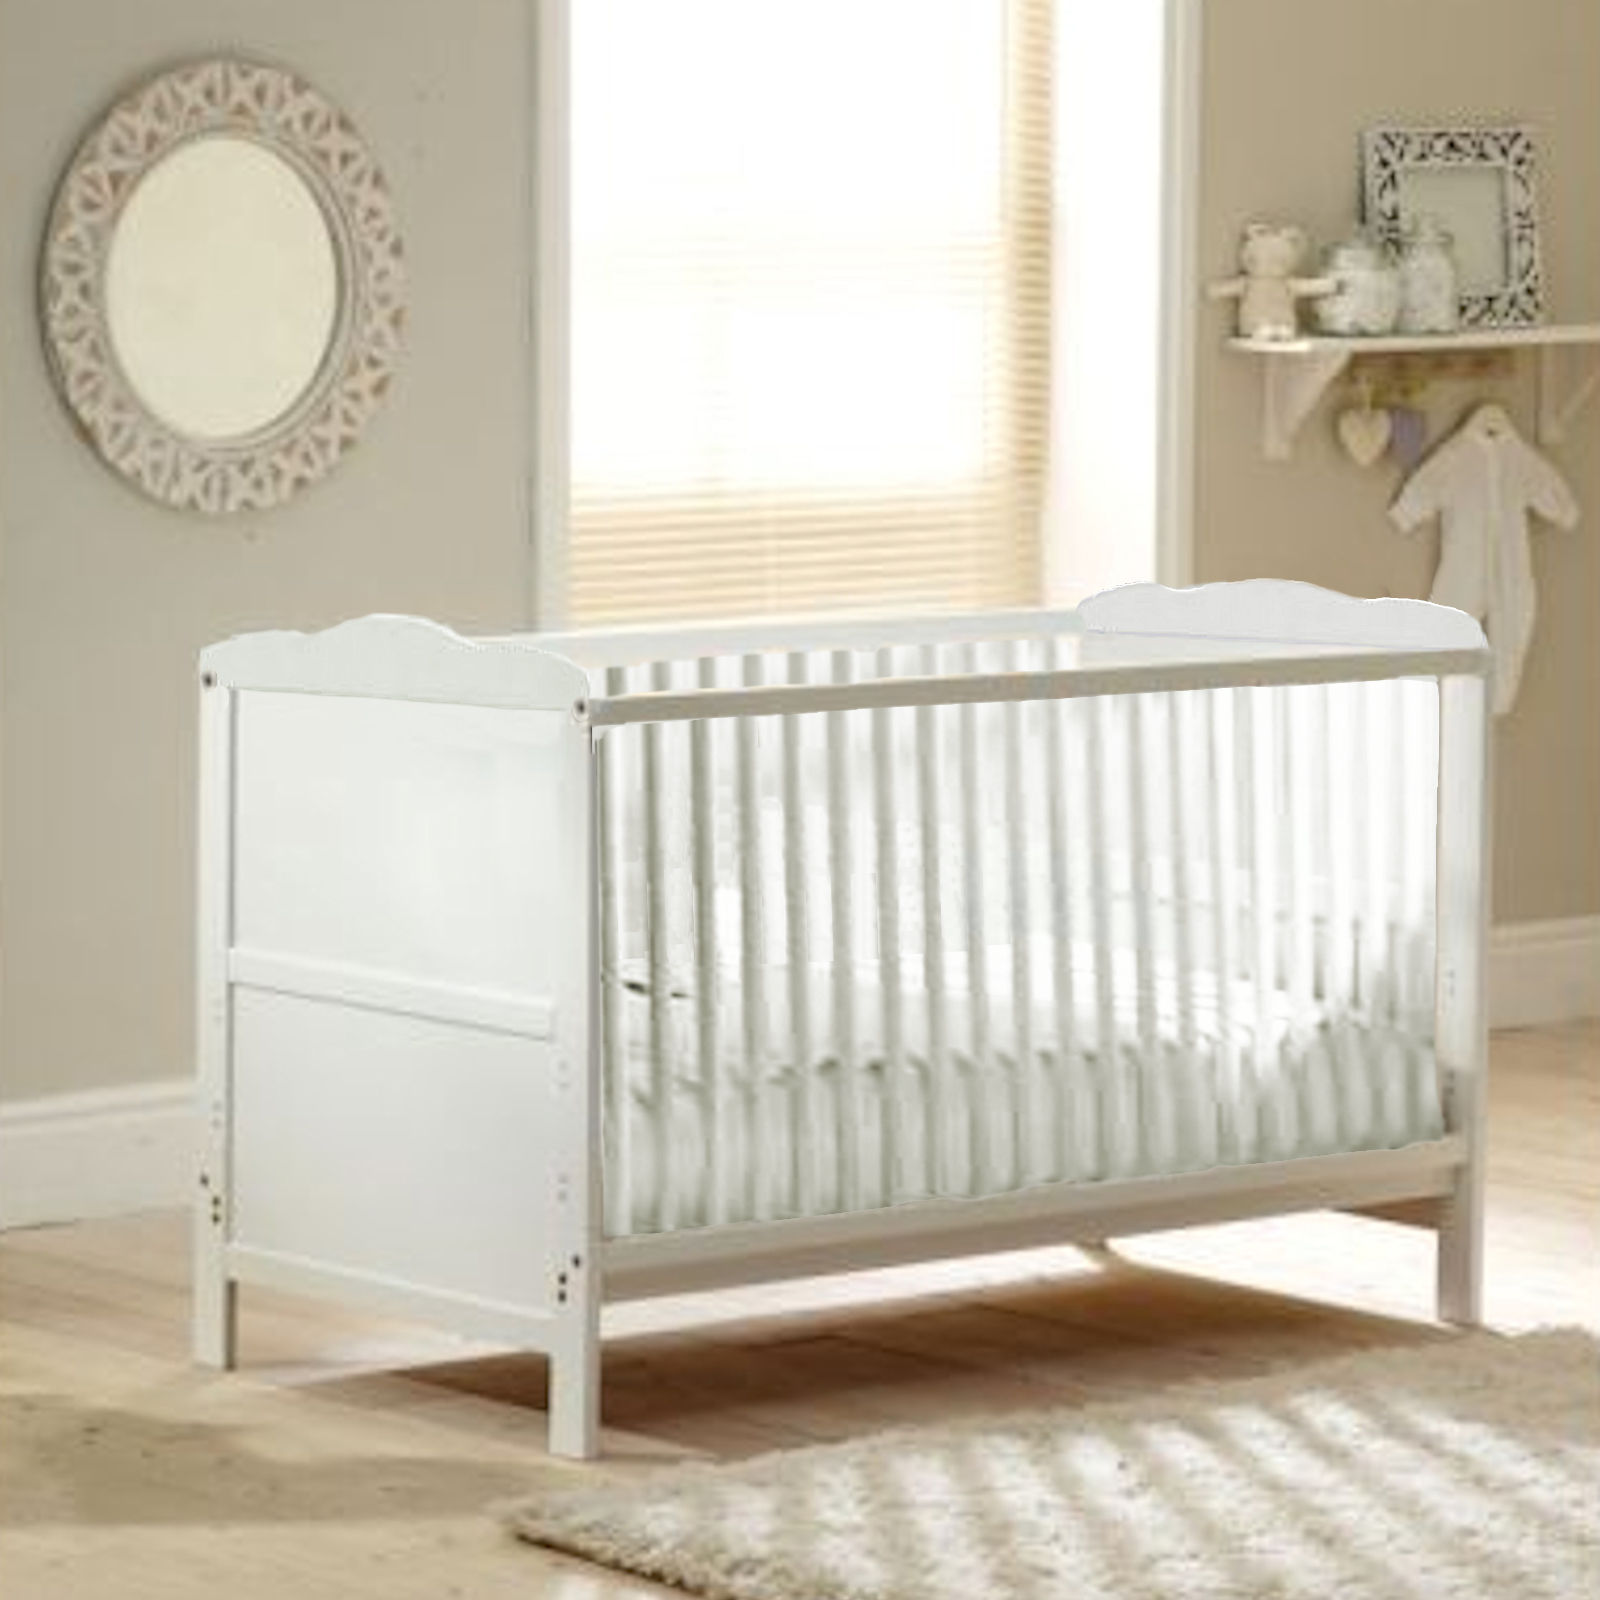 4baby classic cot bed with luxury foam mattress - white | buy at